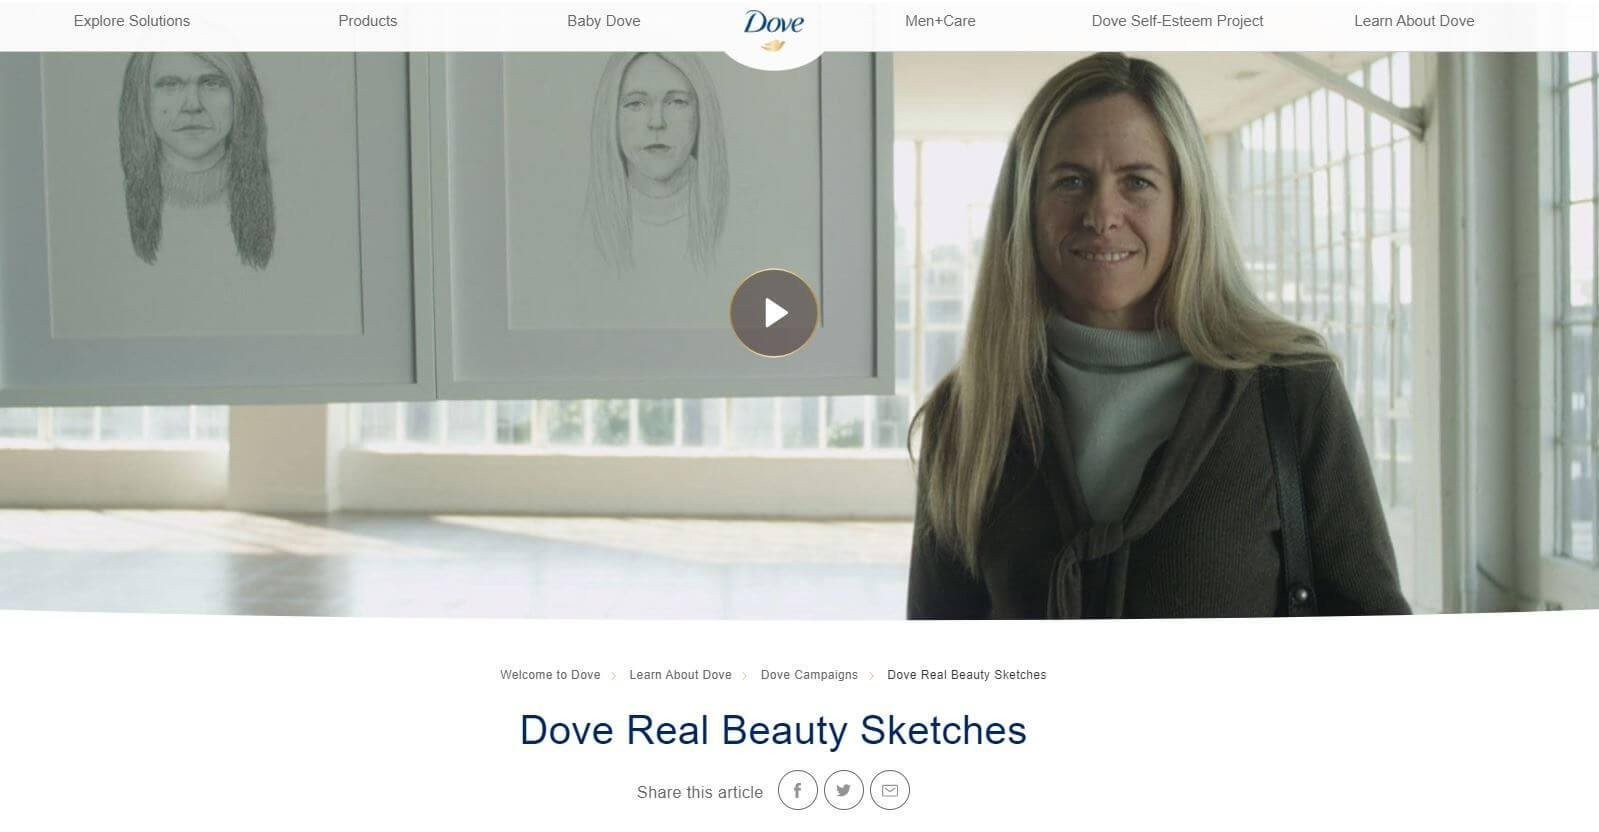 Dove beauty sketches